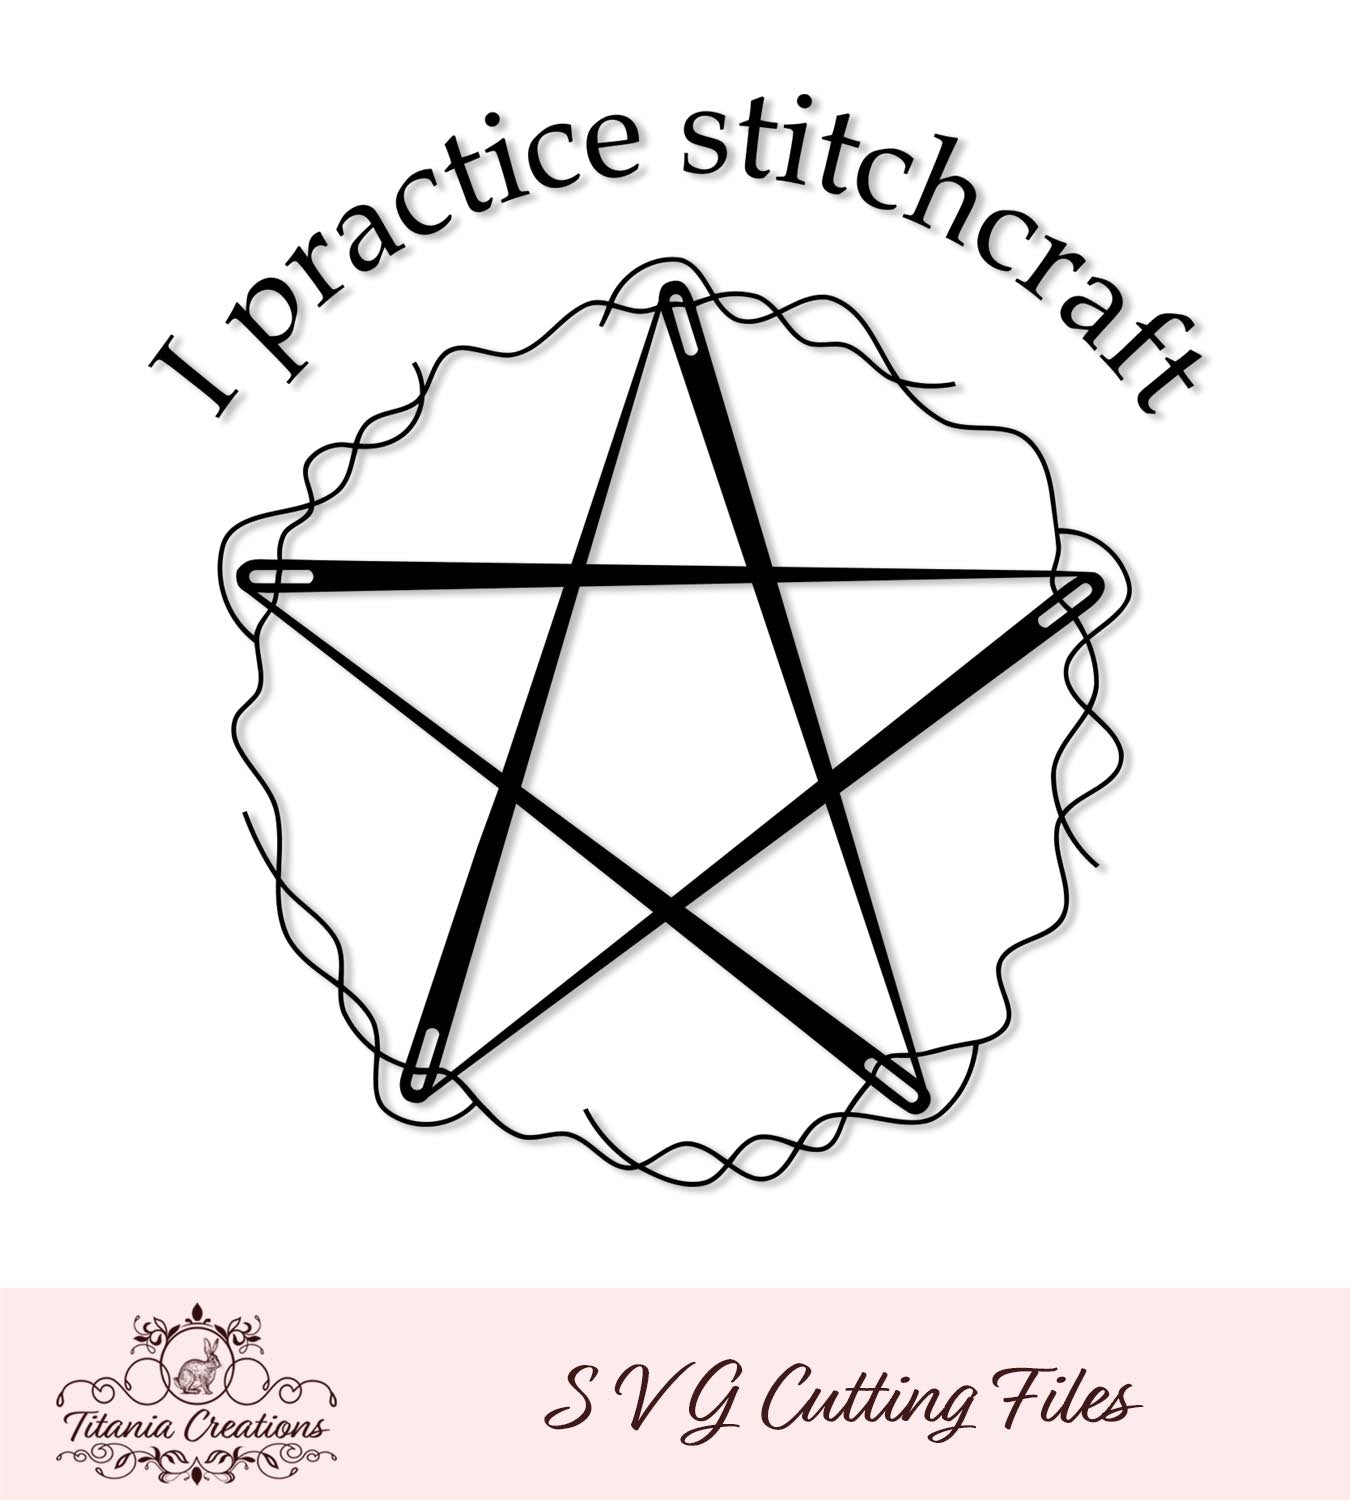 Stitchcraft Sewing Needle Pentacle SVG